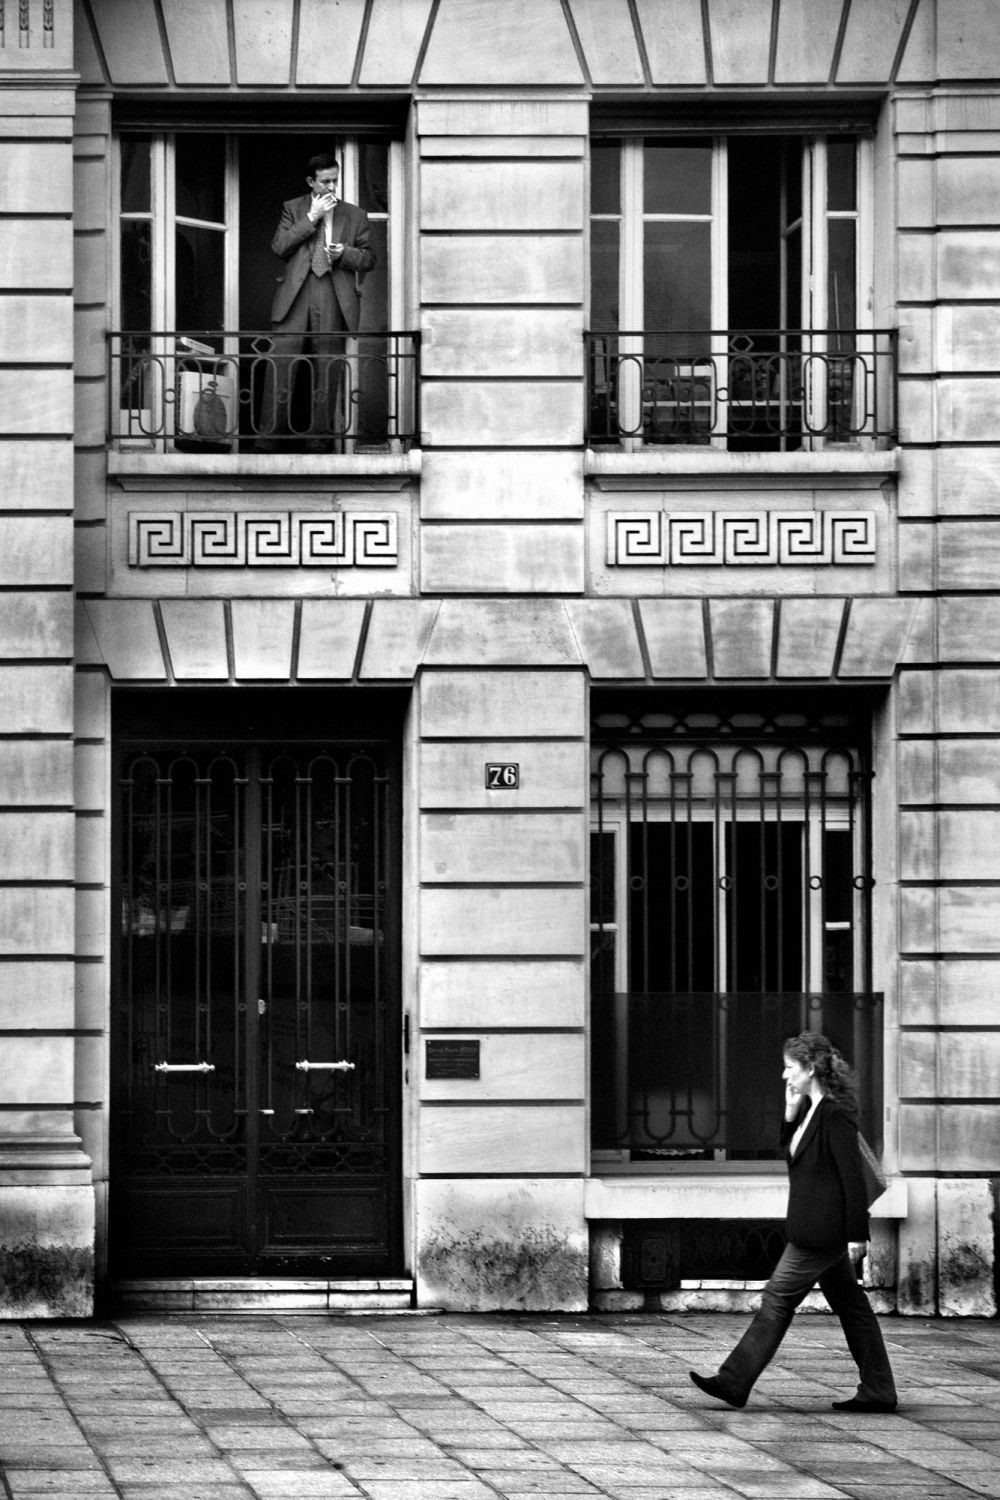 Paris - Rue Bonaparte